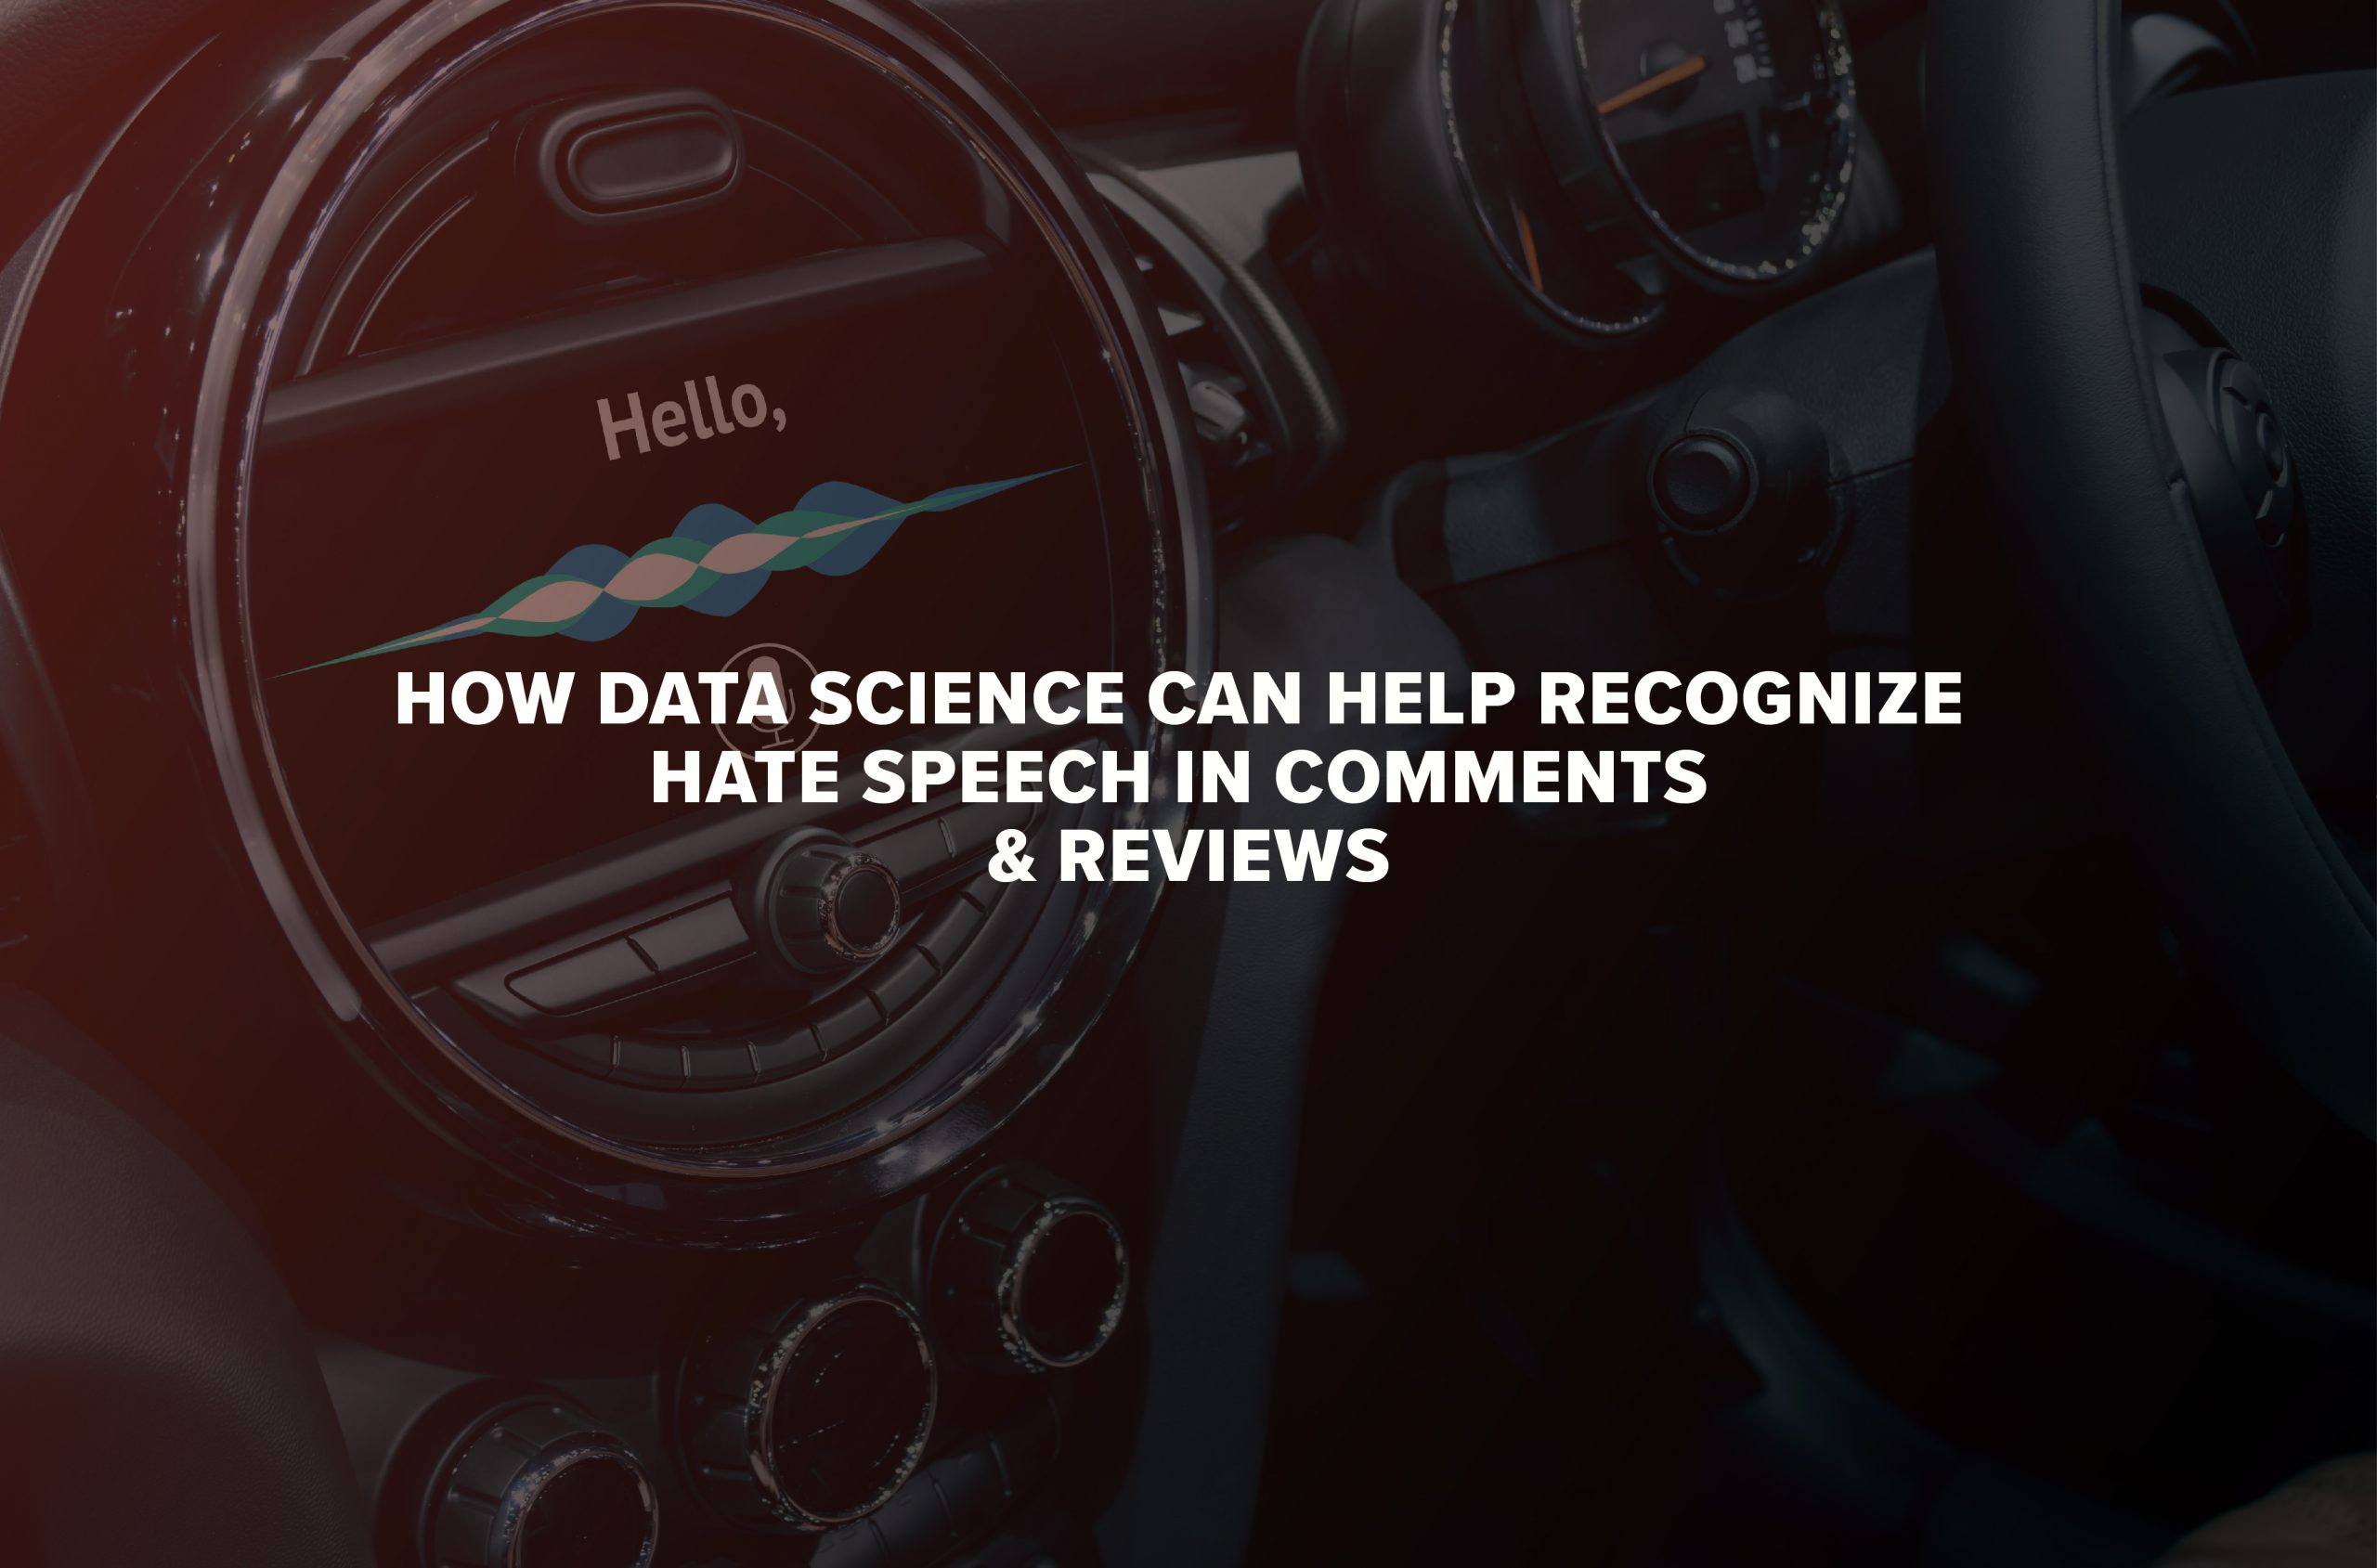 How Data Science Can Help Recognize Hate Speech in Comments & Reviews